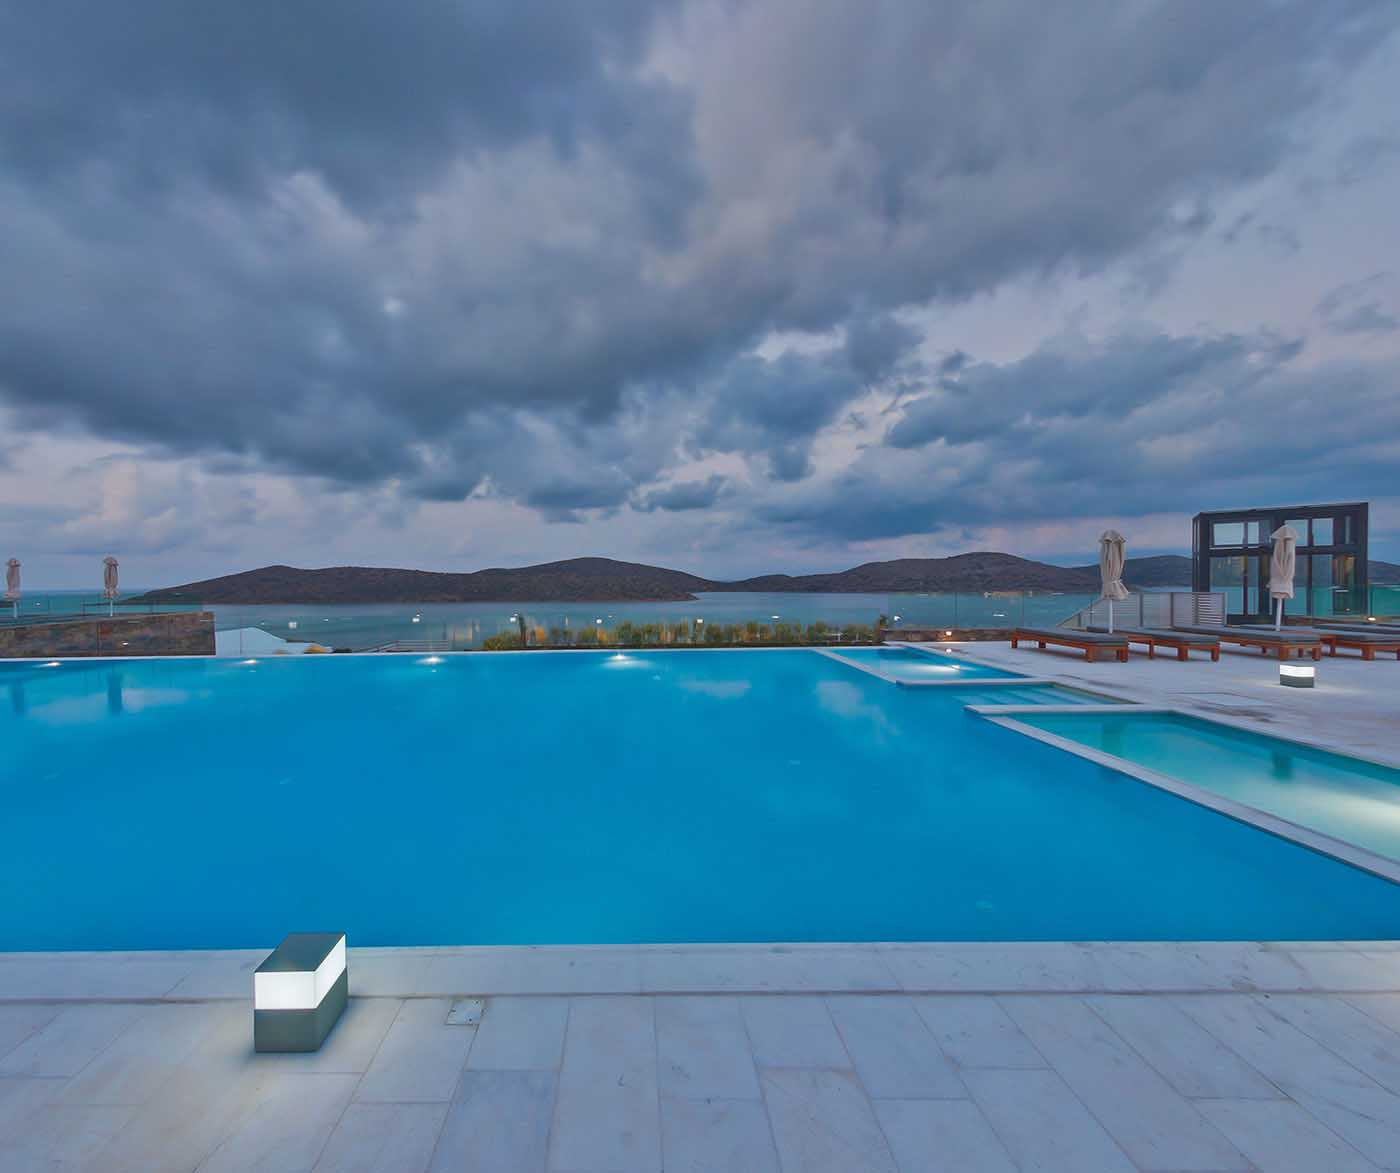 Makris Gialos hotels & resorts, 50% discount for early bookings, Makris Gialos, Lassithi, Crete, Greece